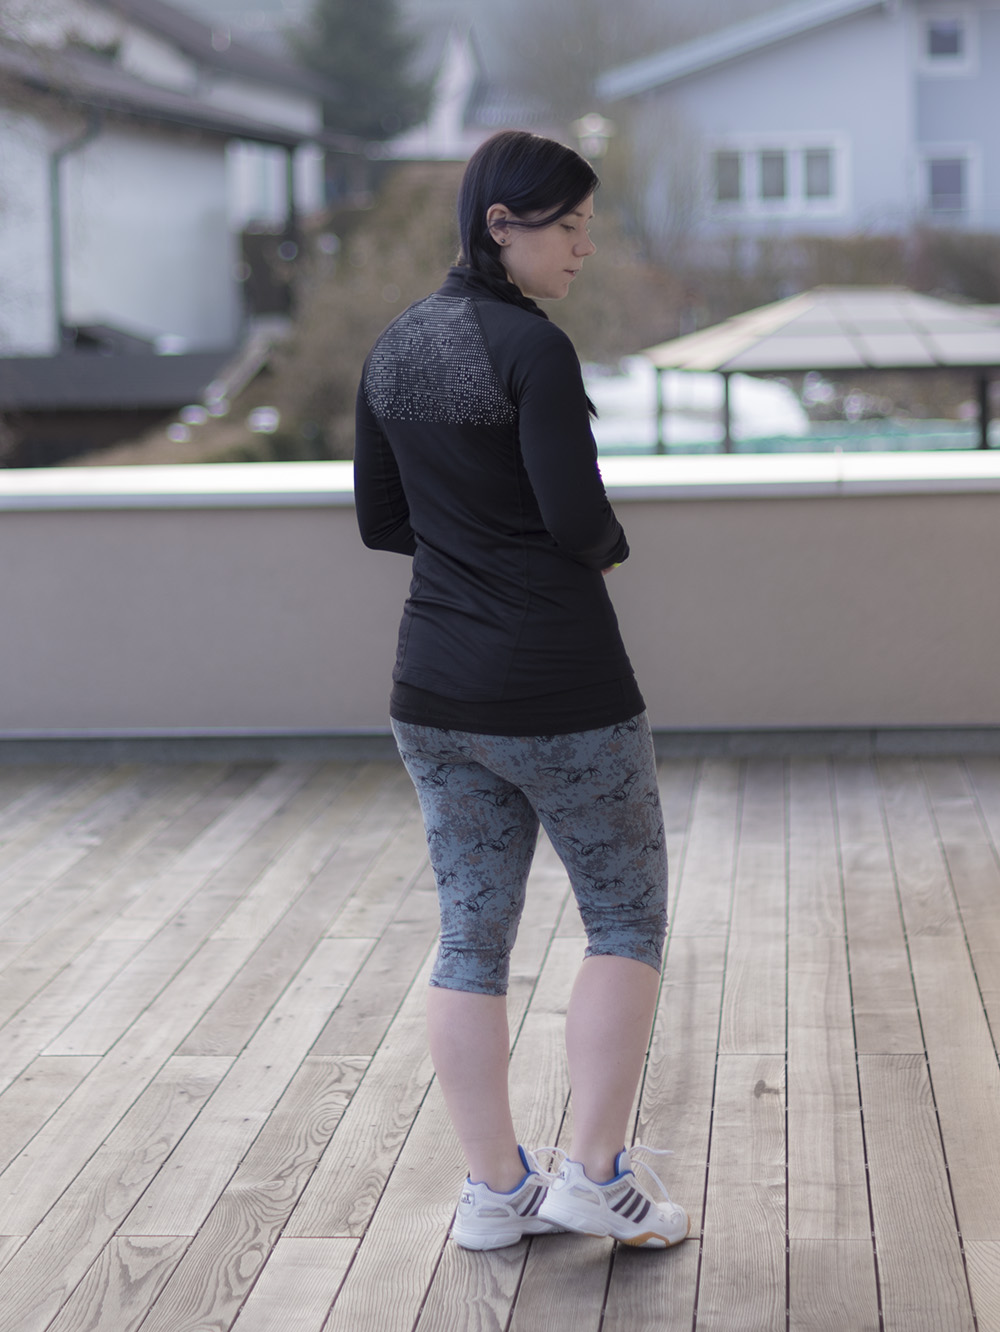 sewing penny leggings sinclair patterns sporty athletic style inspiration idea sneakers top